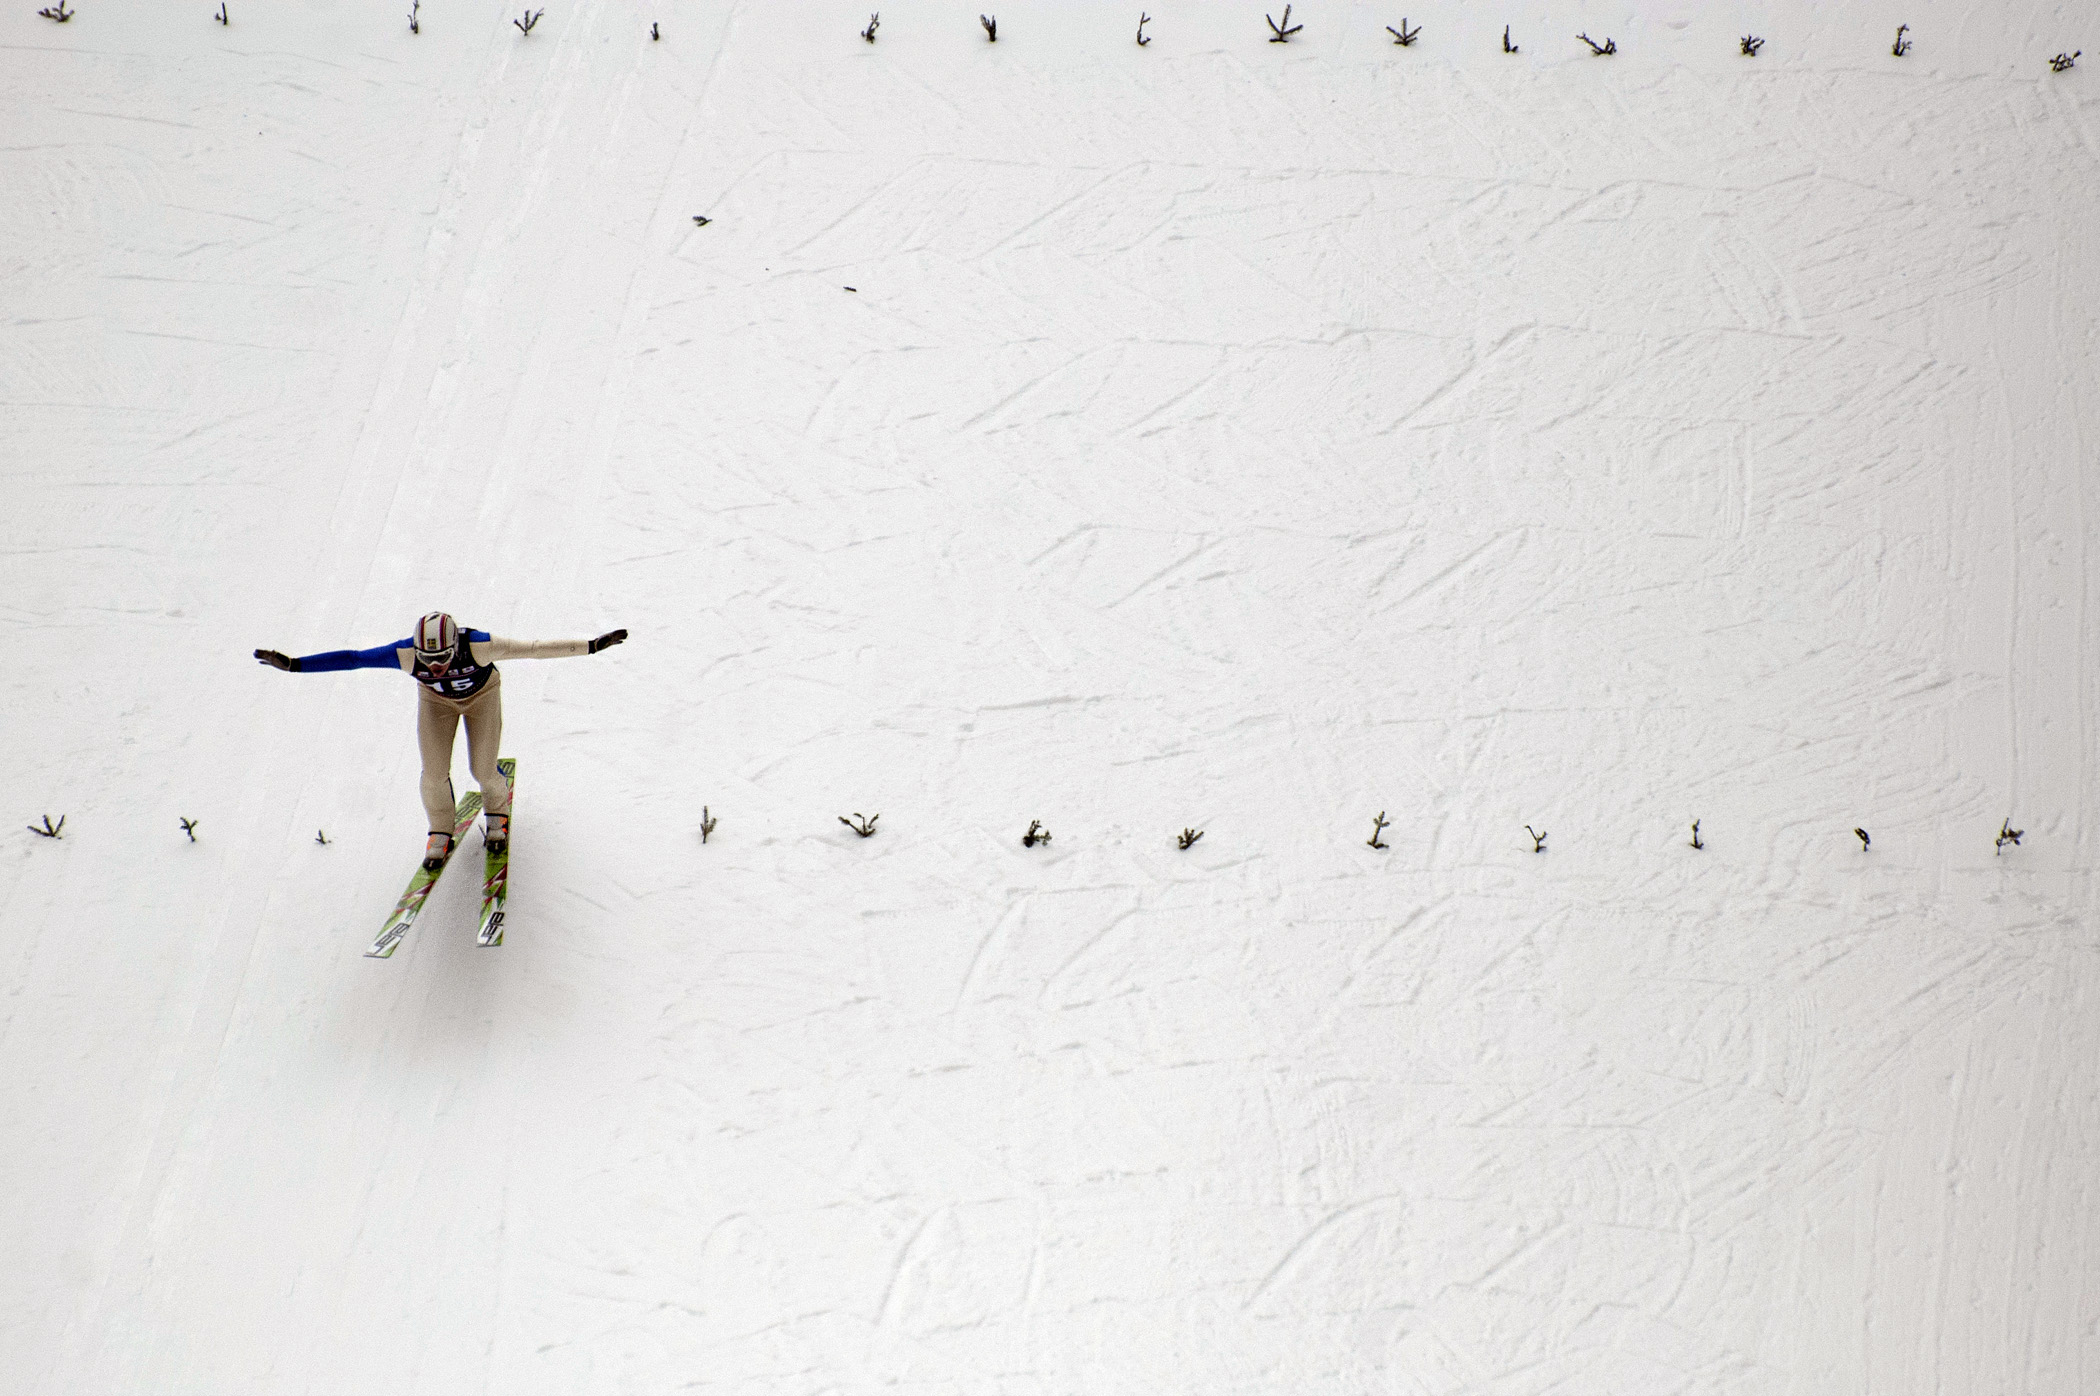 Ski jumper Erik Gundersson of Sweden prepares to land during a jump at the Harris Hill ski jumping competition on Feb. 15, 2014.